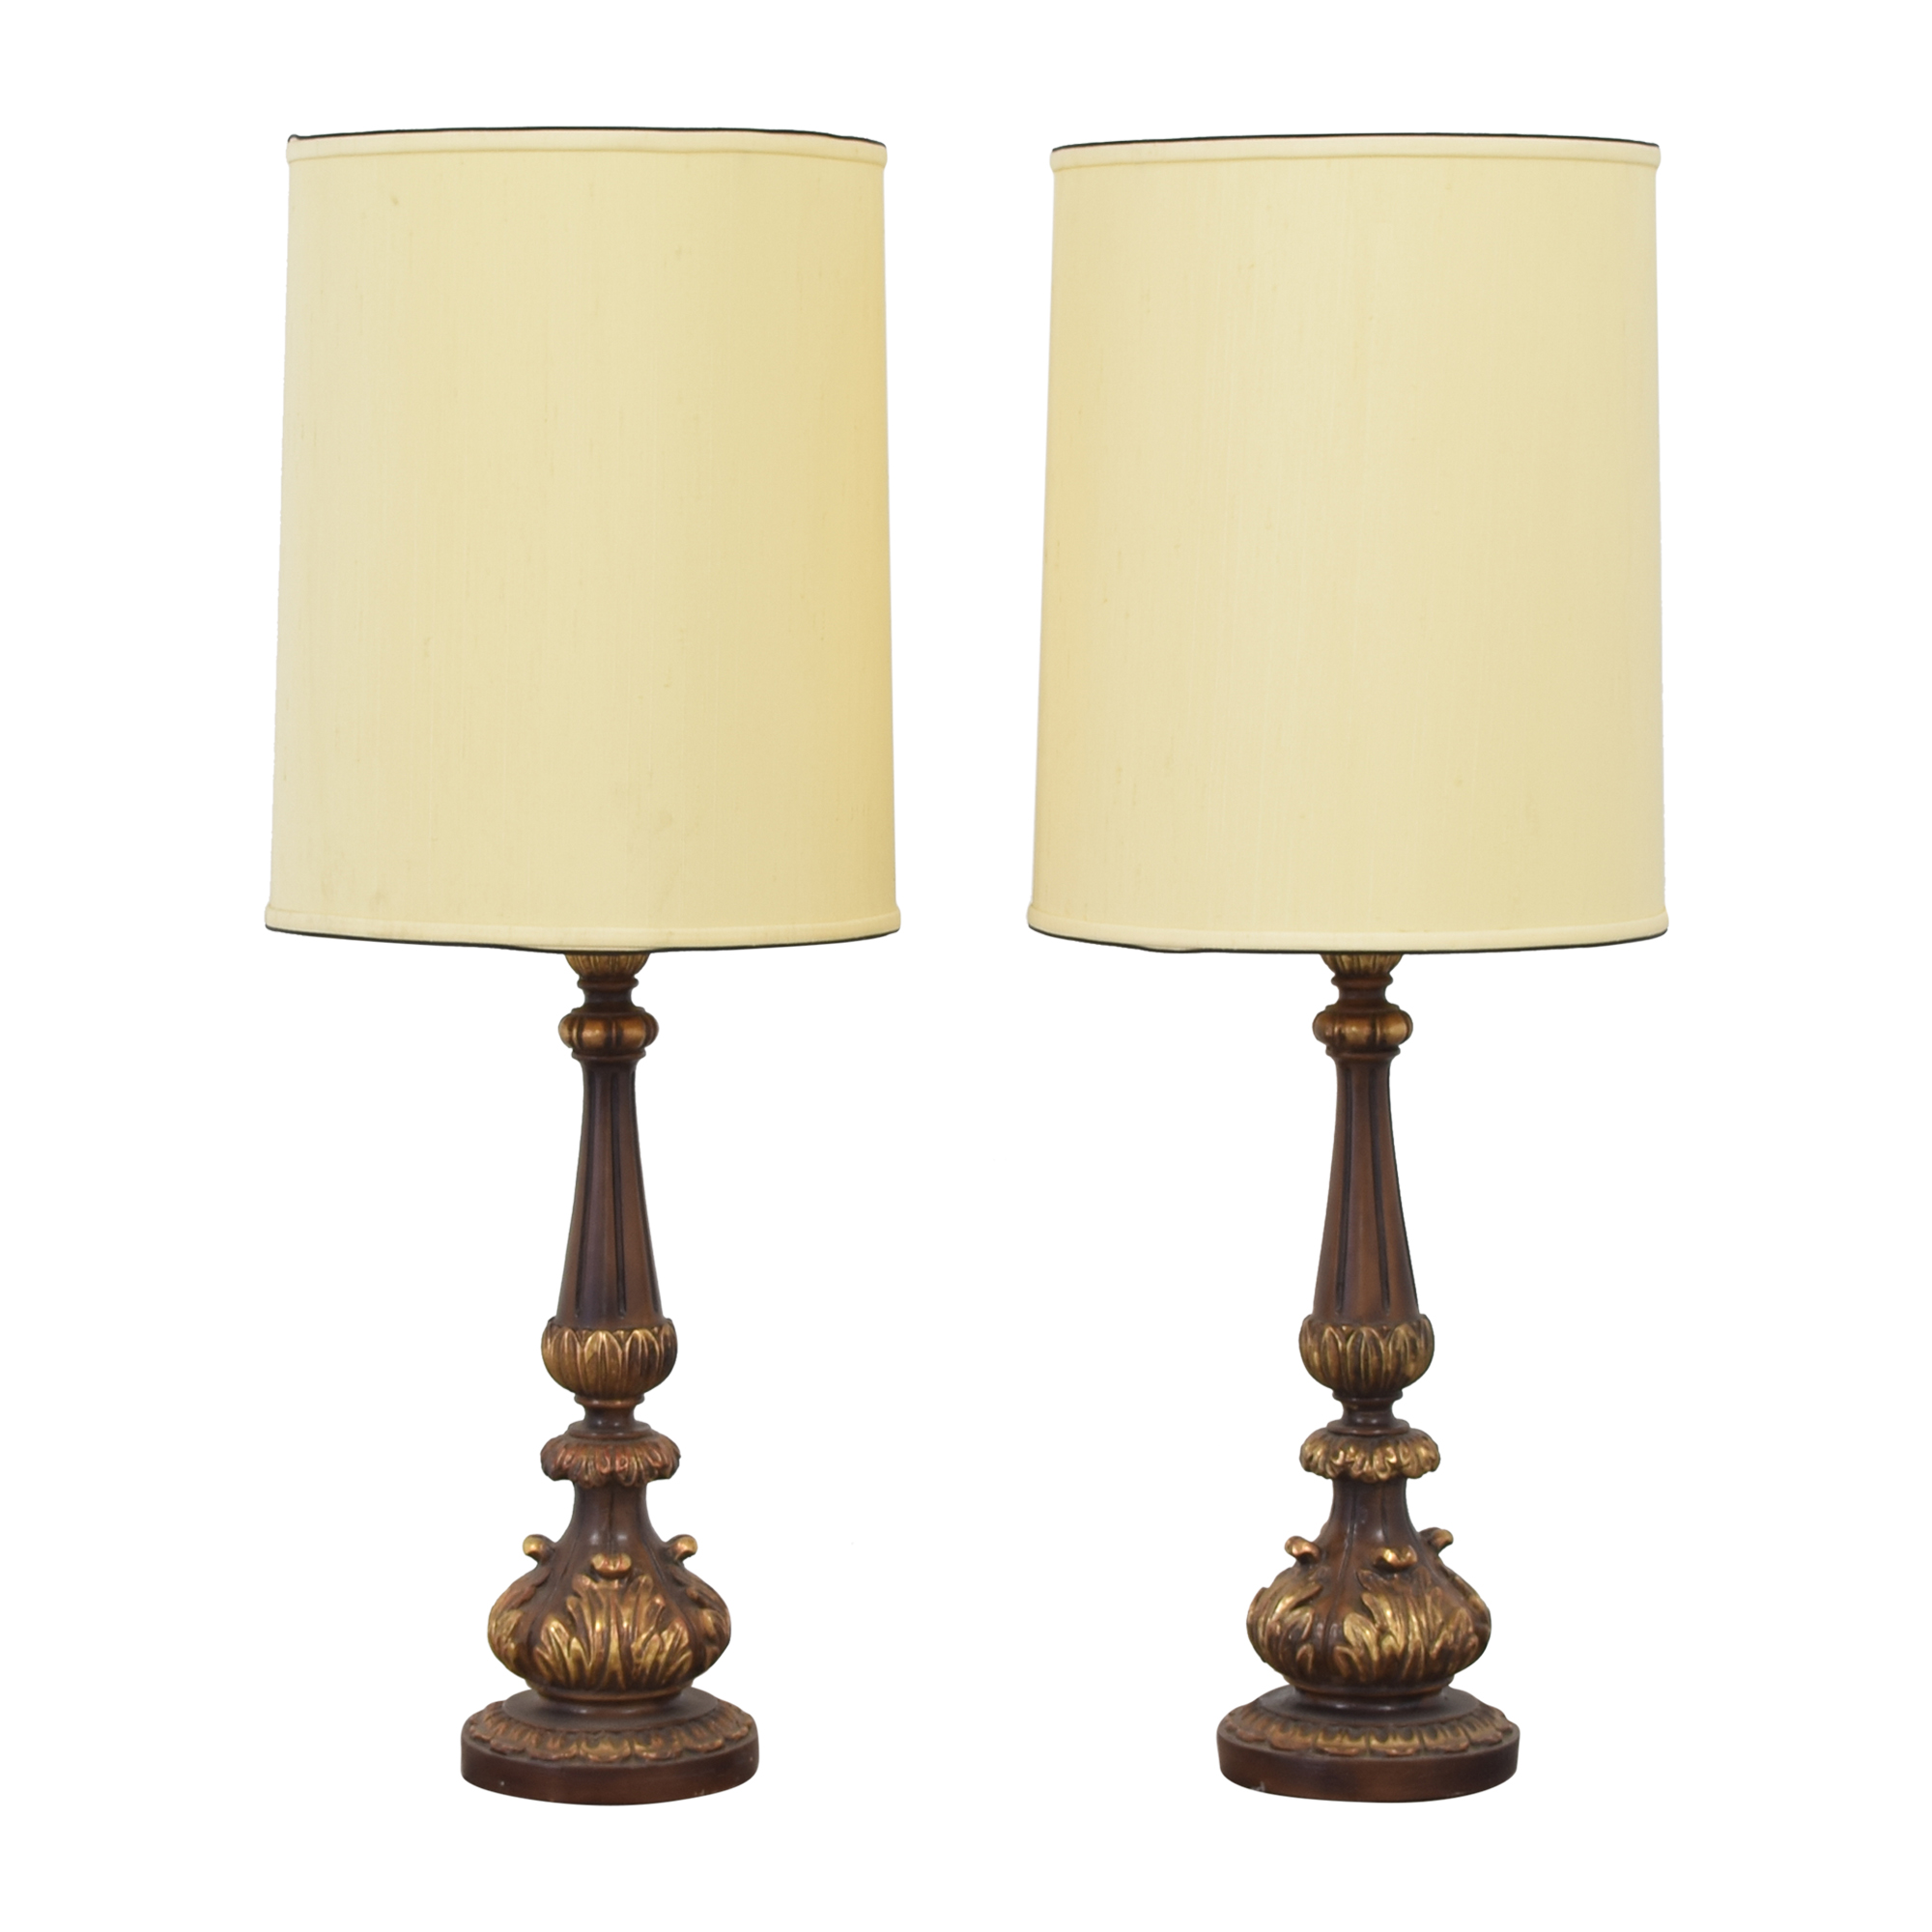 shop Tall Barrel Shaded Mid-Century Table Lamps  Decor